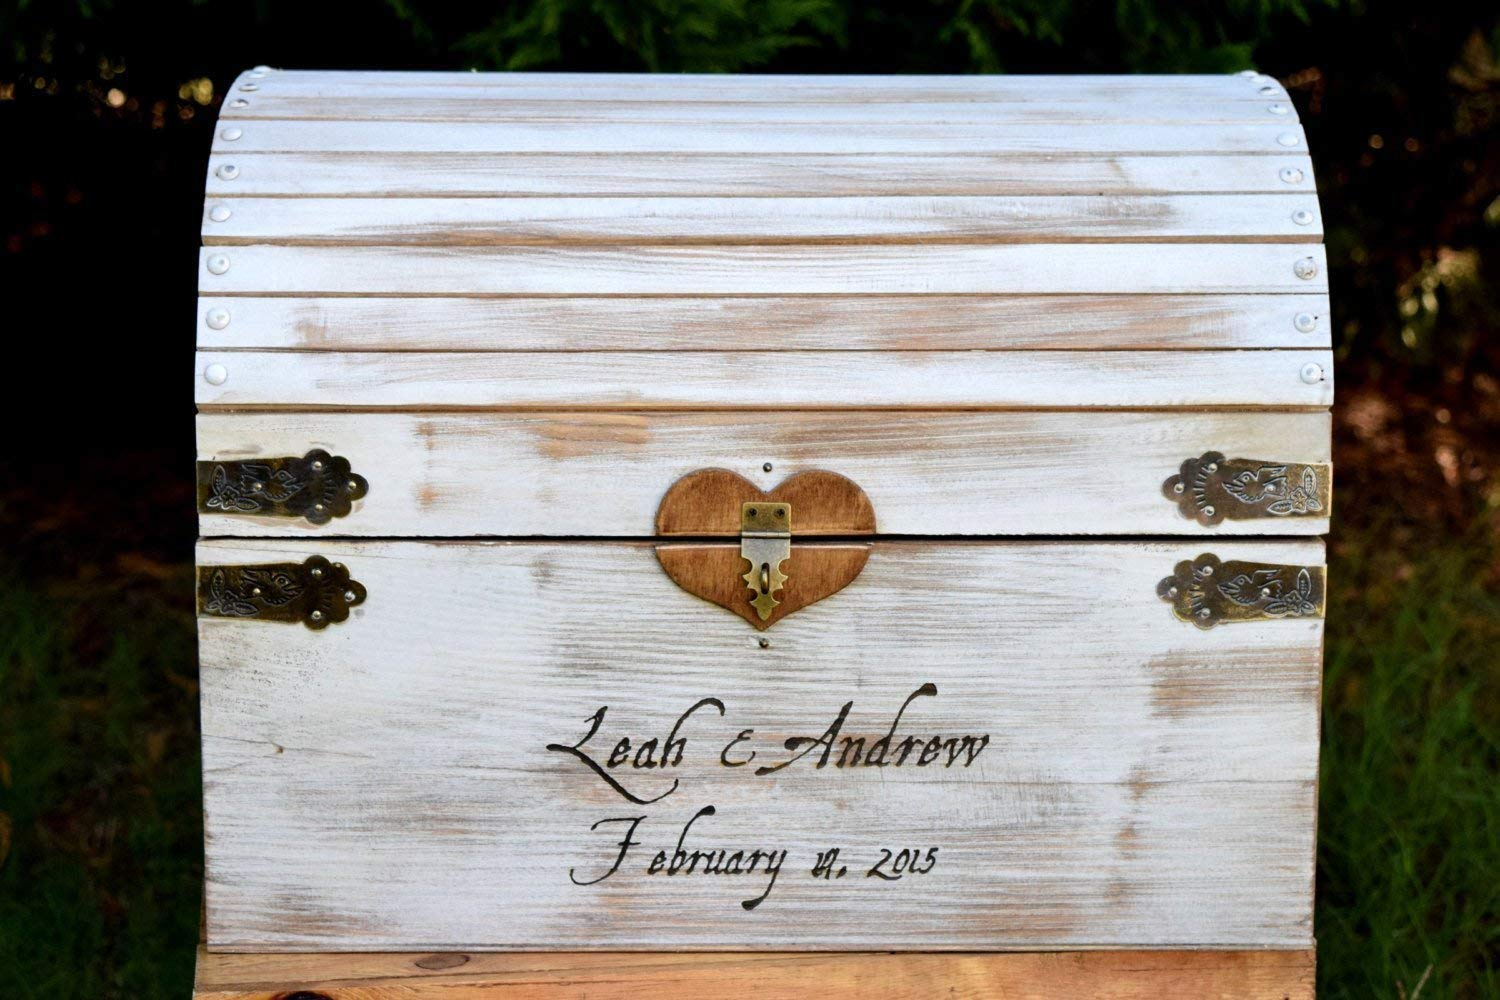 Lockable Card Chest with Card Slit Shabby Chic Card Box Rustic Wedding Card Box White Distressed Extra Large Rustic Wooden Card Box